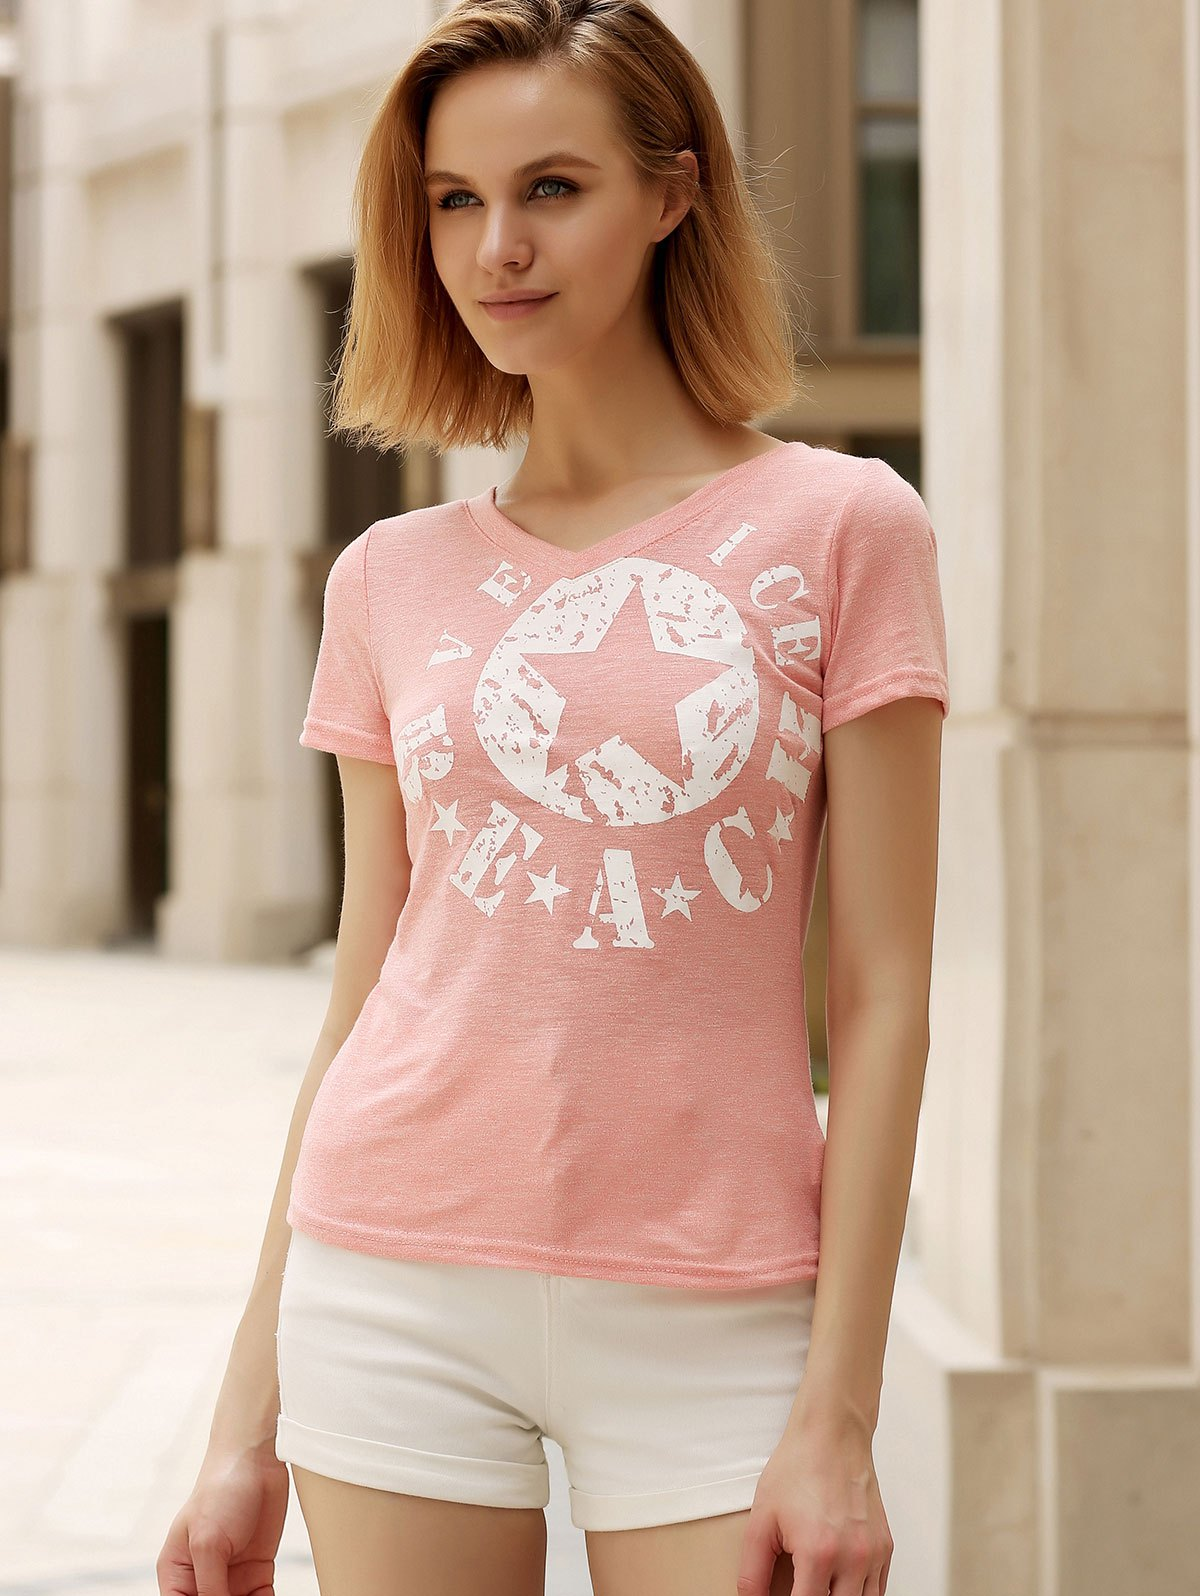 Casual Women's V-Neck Short Sleeve Star T-Shirt - PINK M